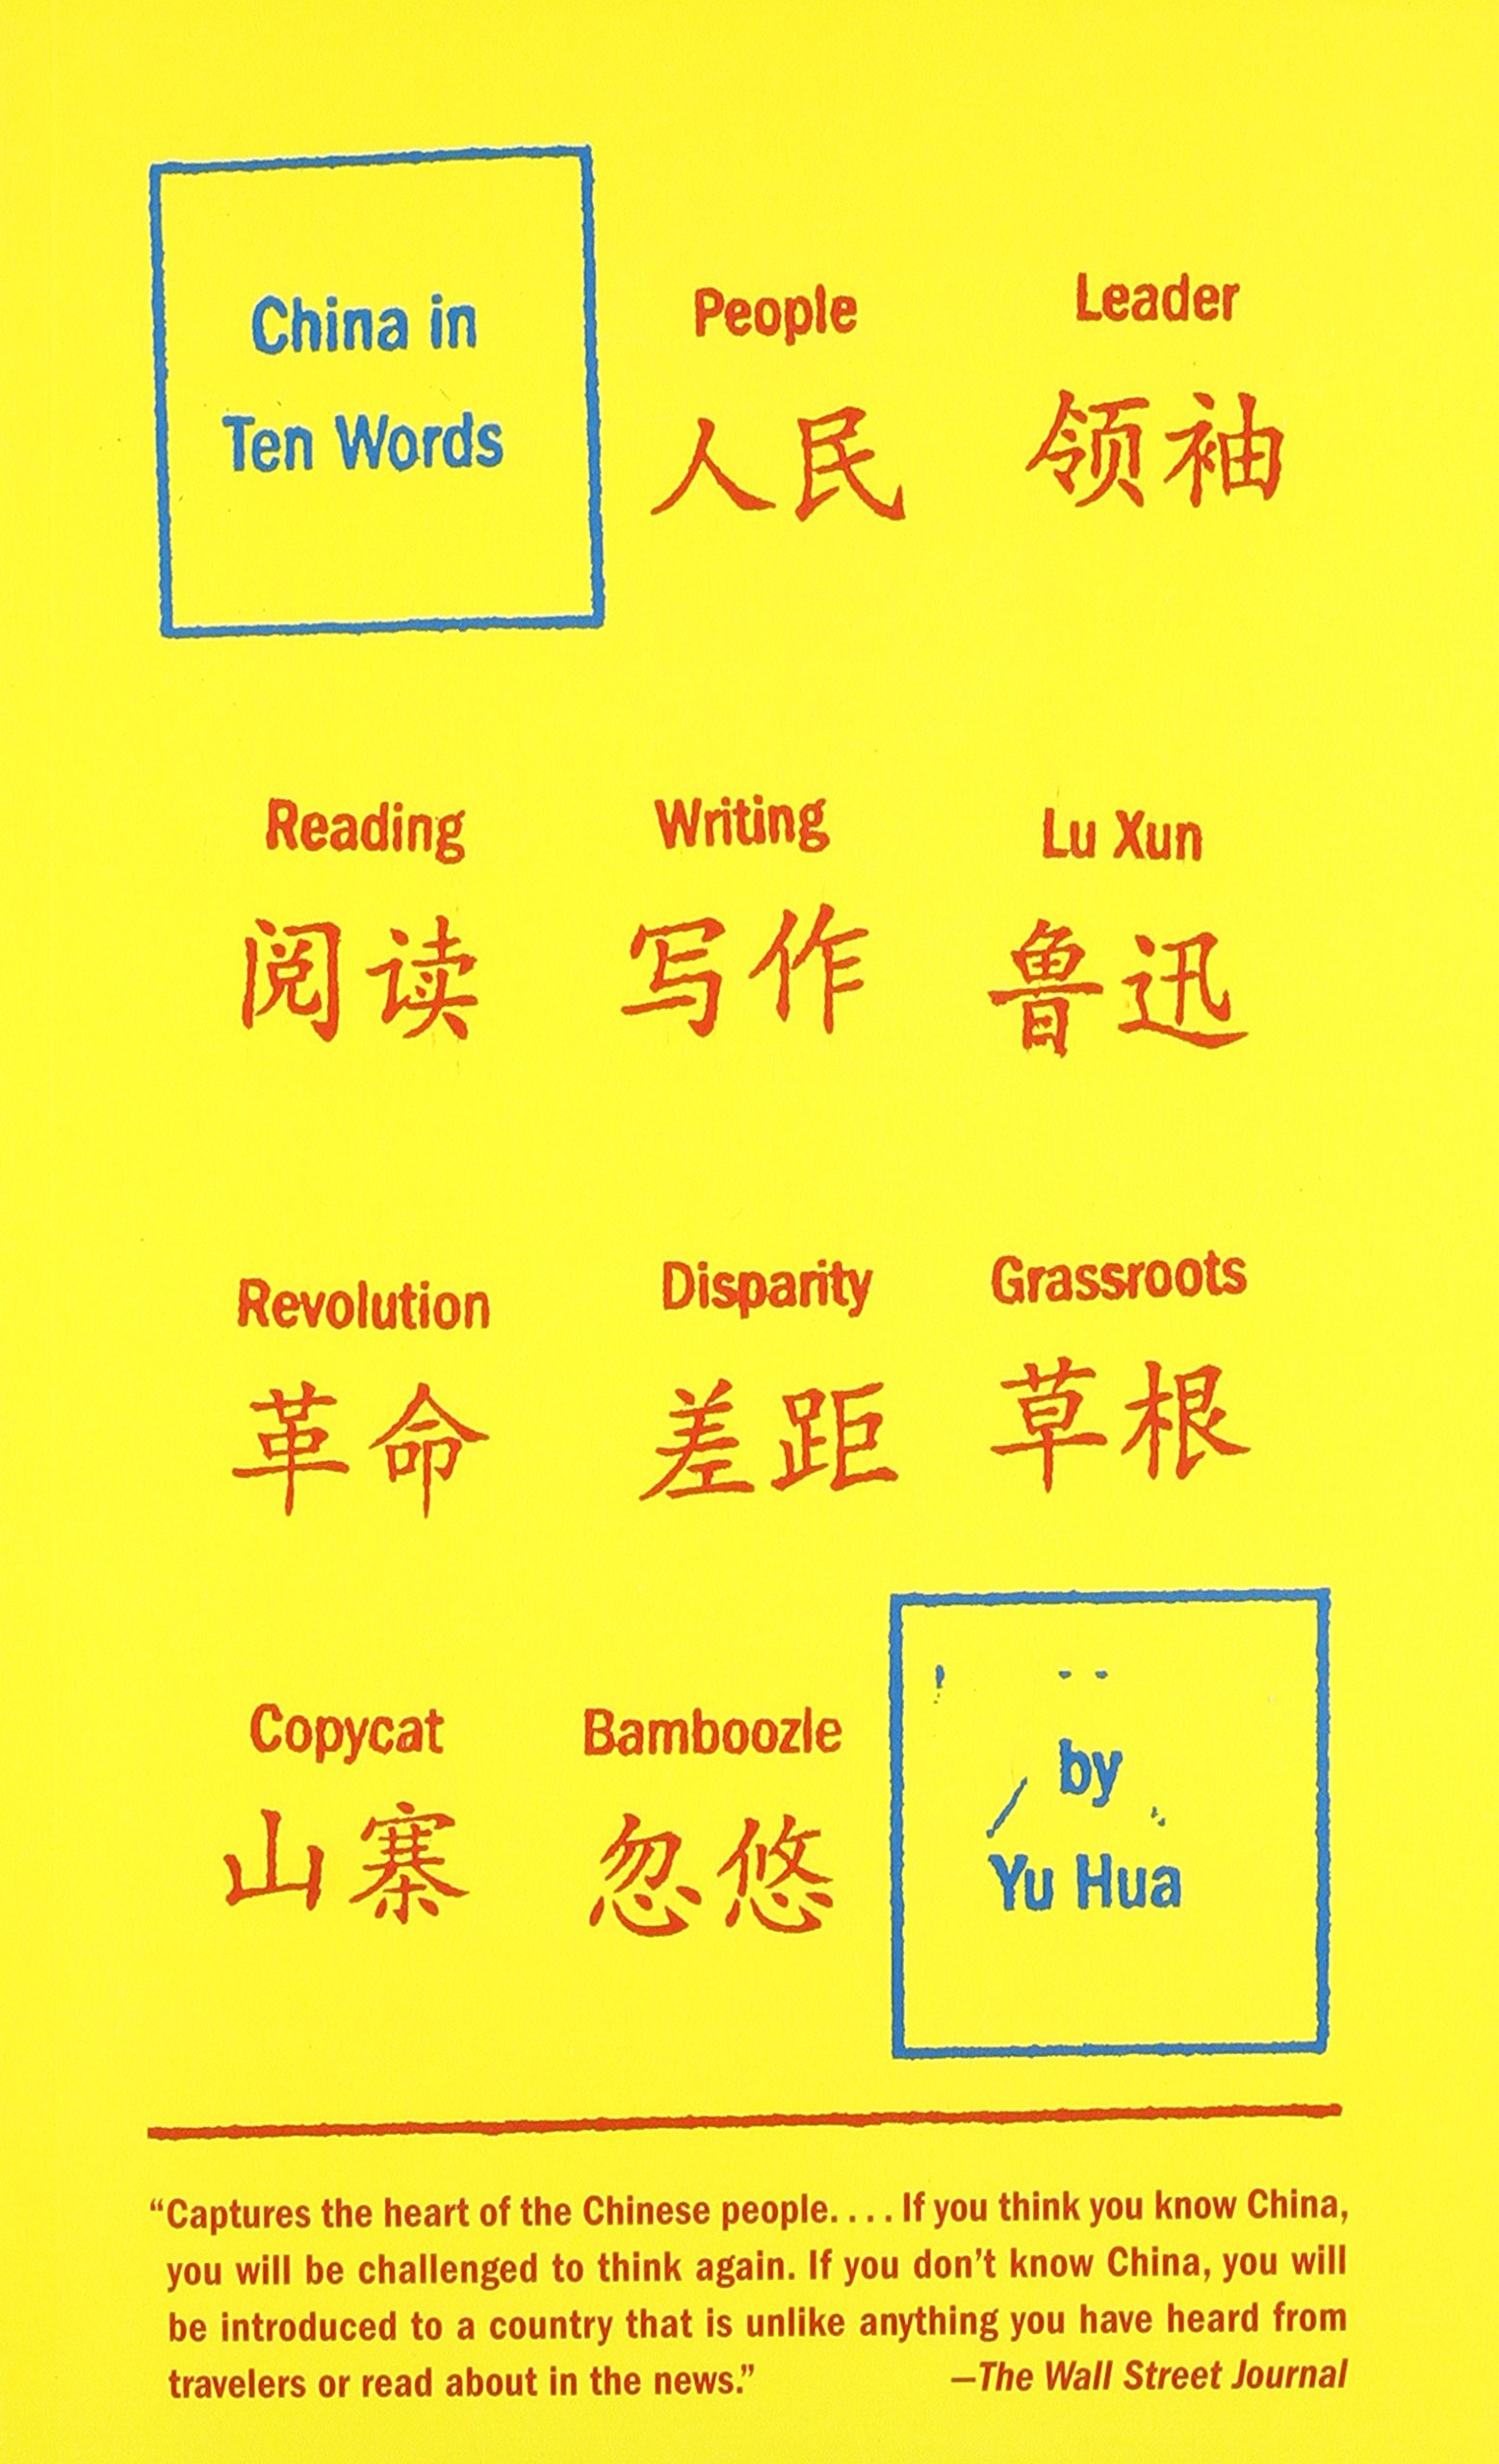 China in ten words yu hua allan h barr 9780307739797 amazon china in ten words yu hua allan h barr 9780307739797 amazon books biocorpaavc